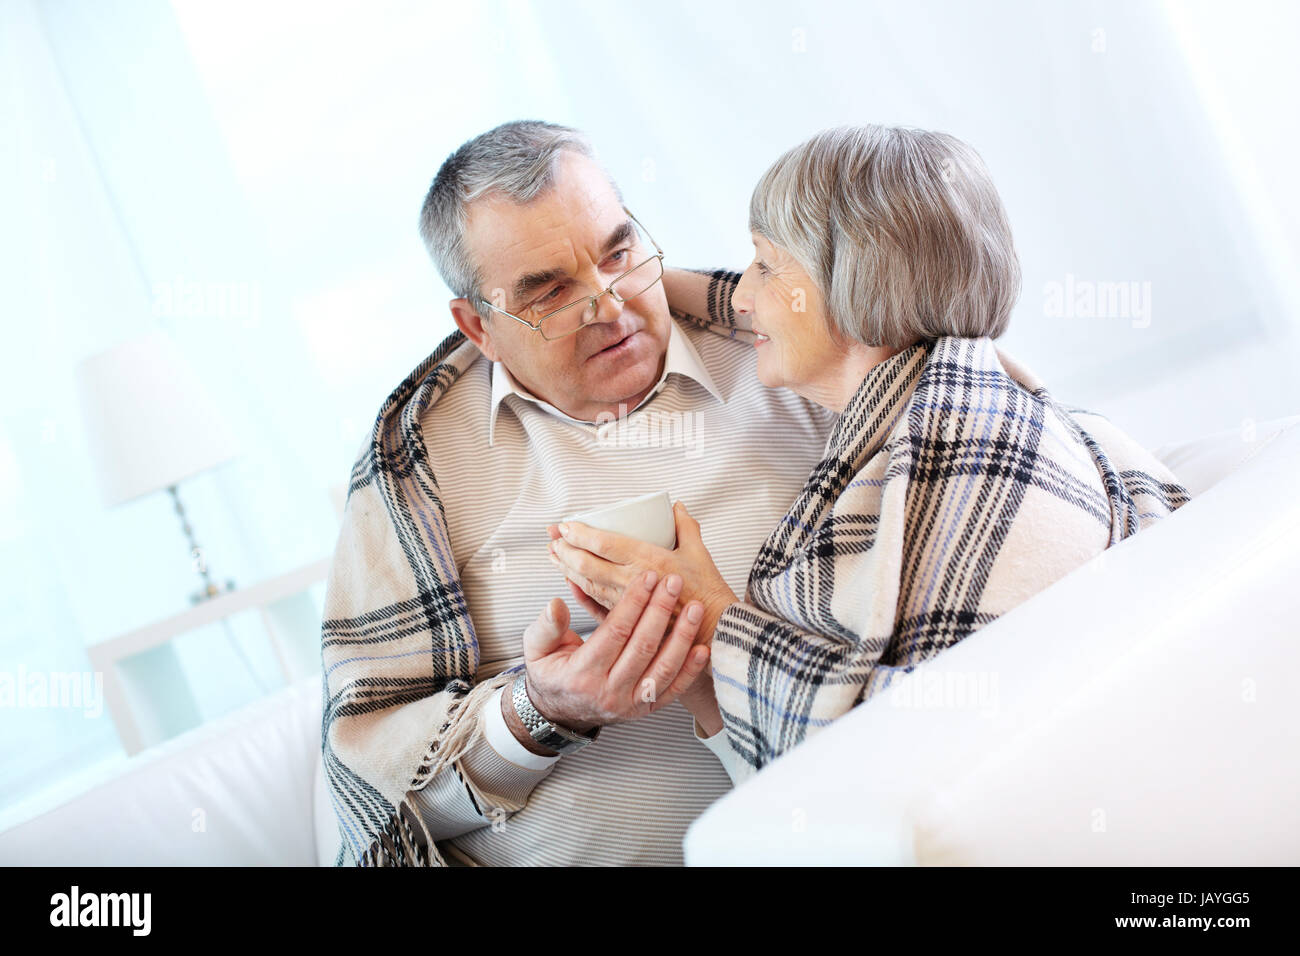 Portrait of a happy senior couple wrapped in plaid sitting at home - Stock Image